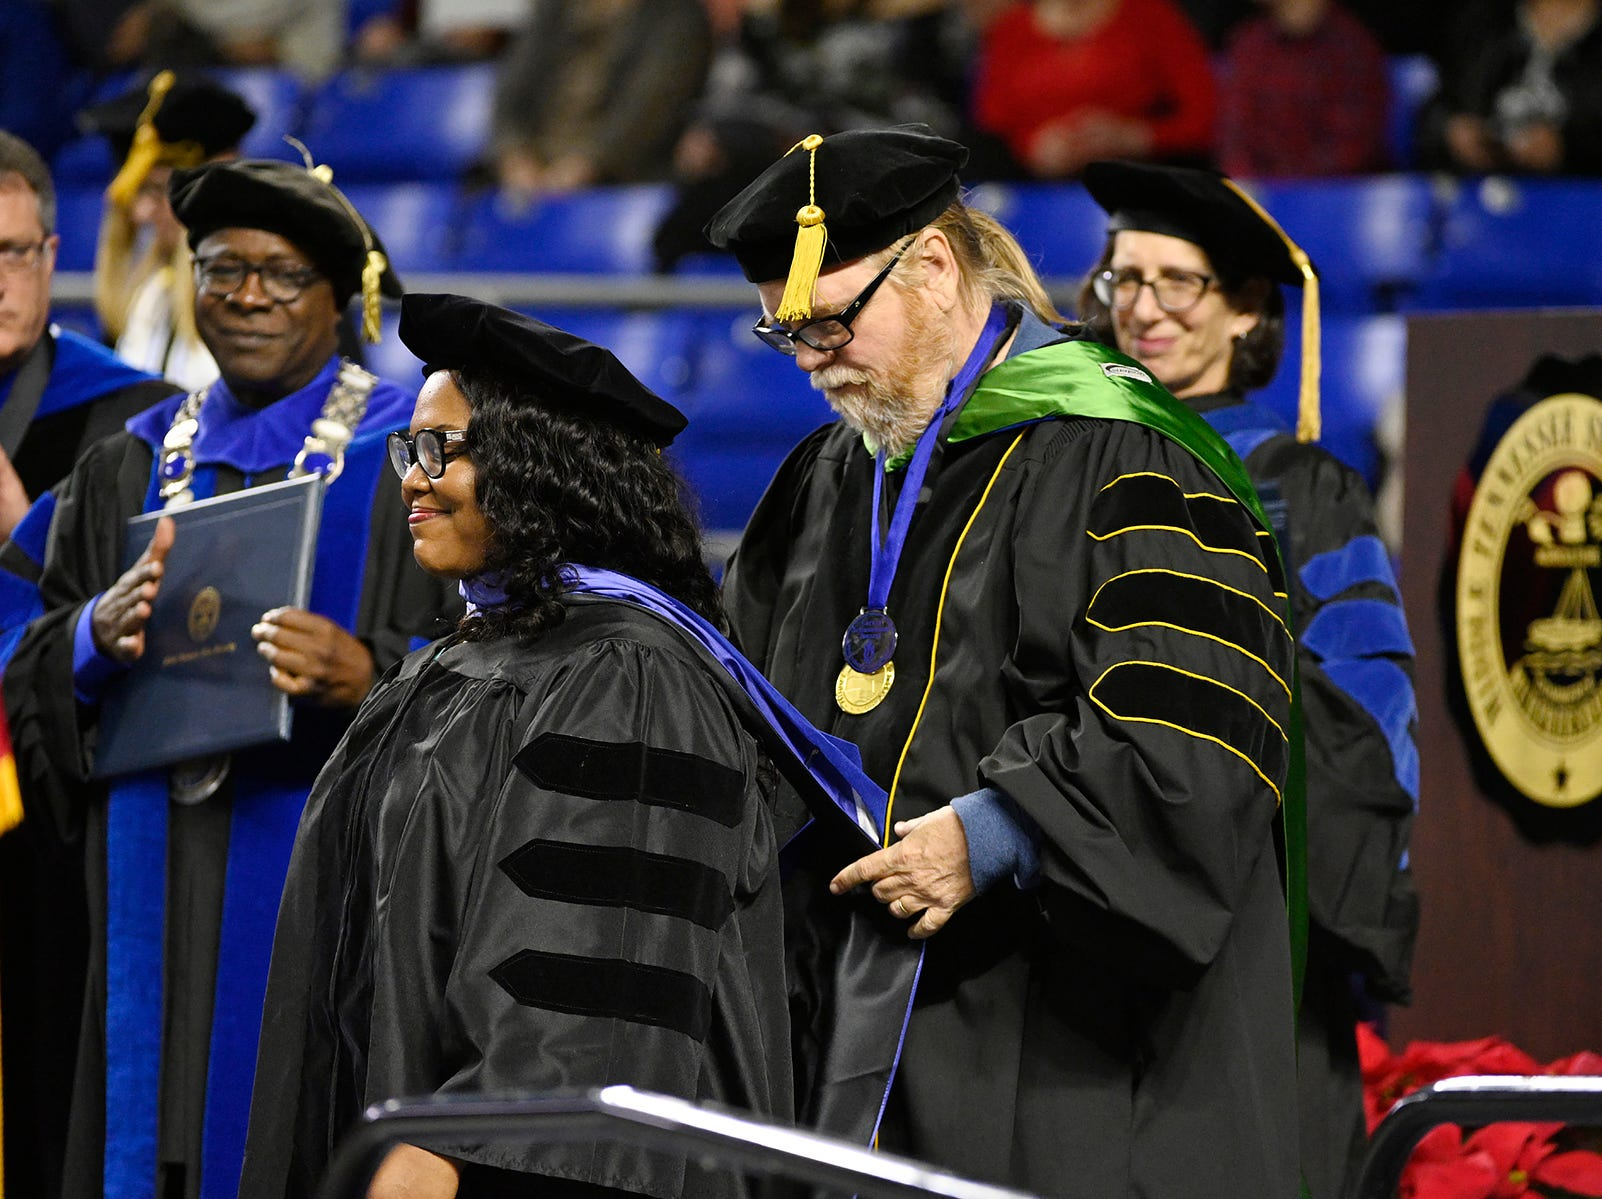 Marquita R. Reed, center, smiles with pride as Carroll Van West, head of MTSU's Center for Historic Preservation and a lead professor in the Public History Program, helps her don her doctoral hood  Saturday, Dec. 15, at the university's fall 2018 morning commencement ceremony in Murphy Center. Looking on are, from left, University Provost Mark Byrnes, MTSU President Sidney A. McPhee and Cheryl B. Torsney, vice provost for faculty affairs. Reed, who is collections manager at the National Museum of African American Music in Nashville, was one of 260 graduate students and 1,471 undergraduates receiving their degrees in Saturday's dual ceremonies.